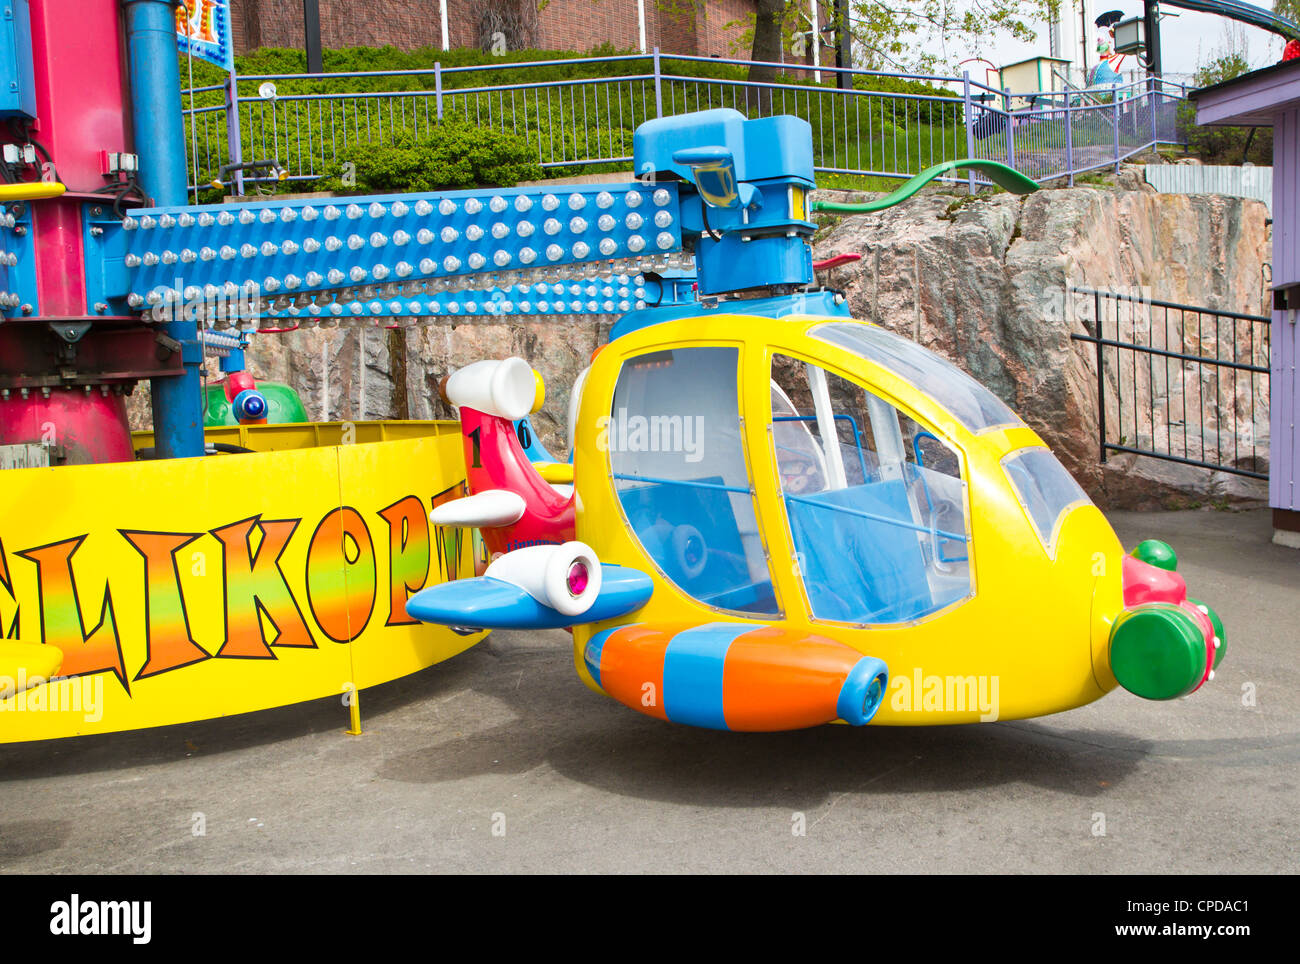 amusement park equipment - Stock Image